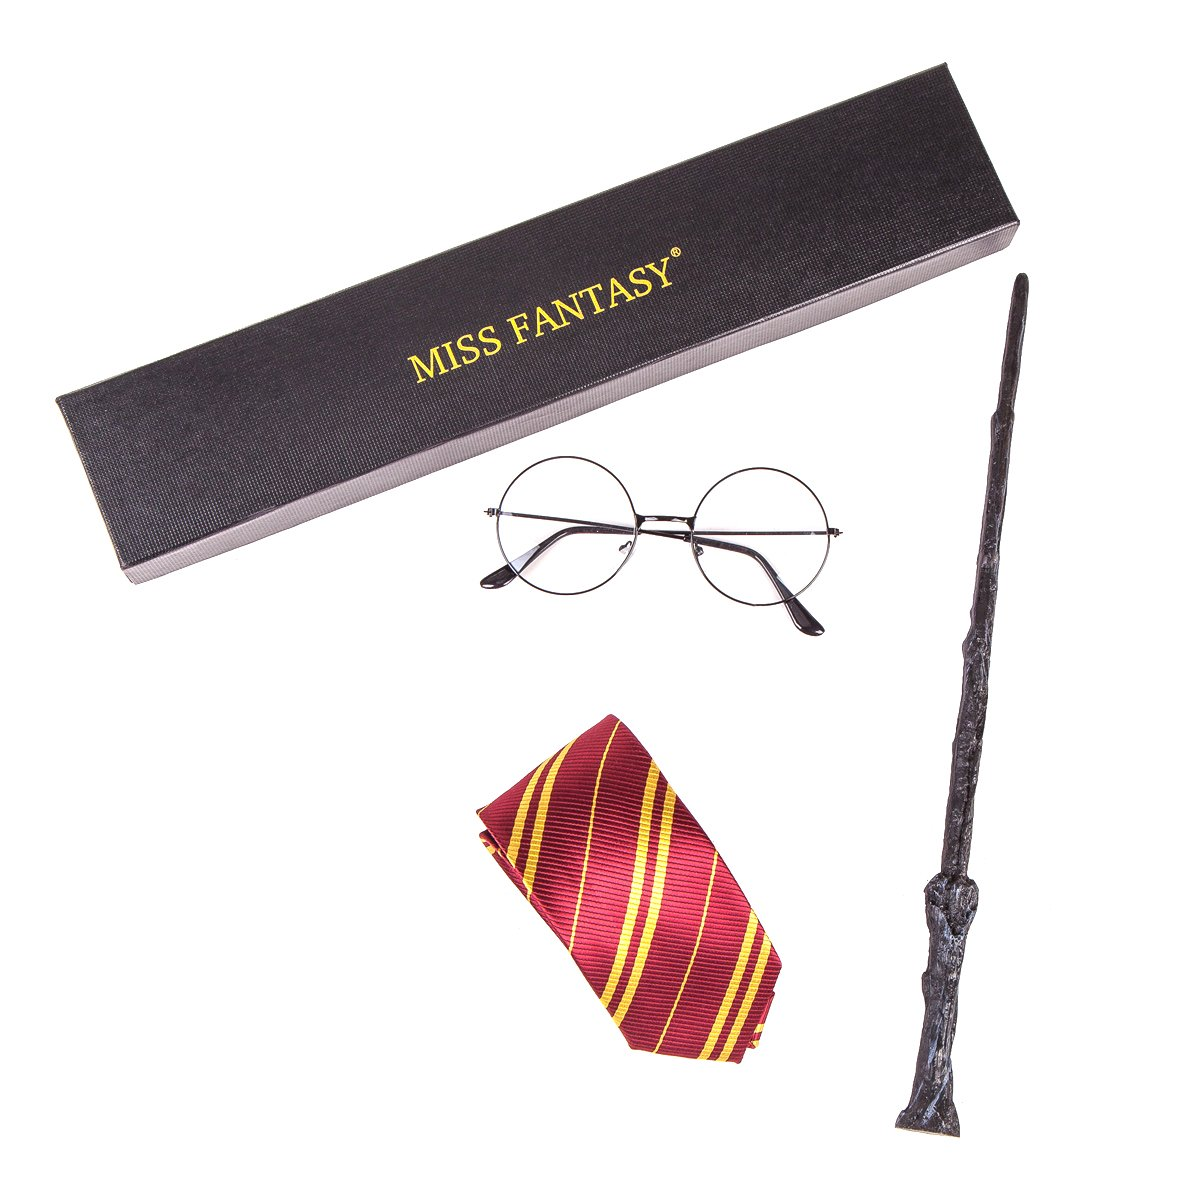 MISS FANTASY Wand Set Cosplay Party Costume Accessories Halloween Party